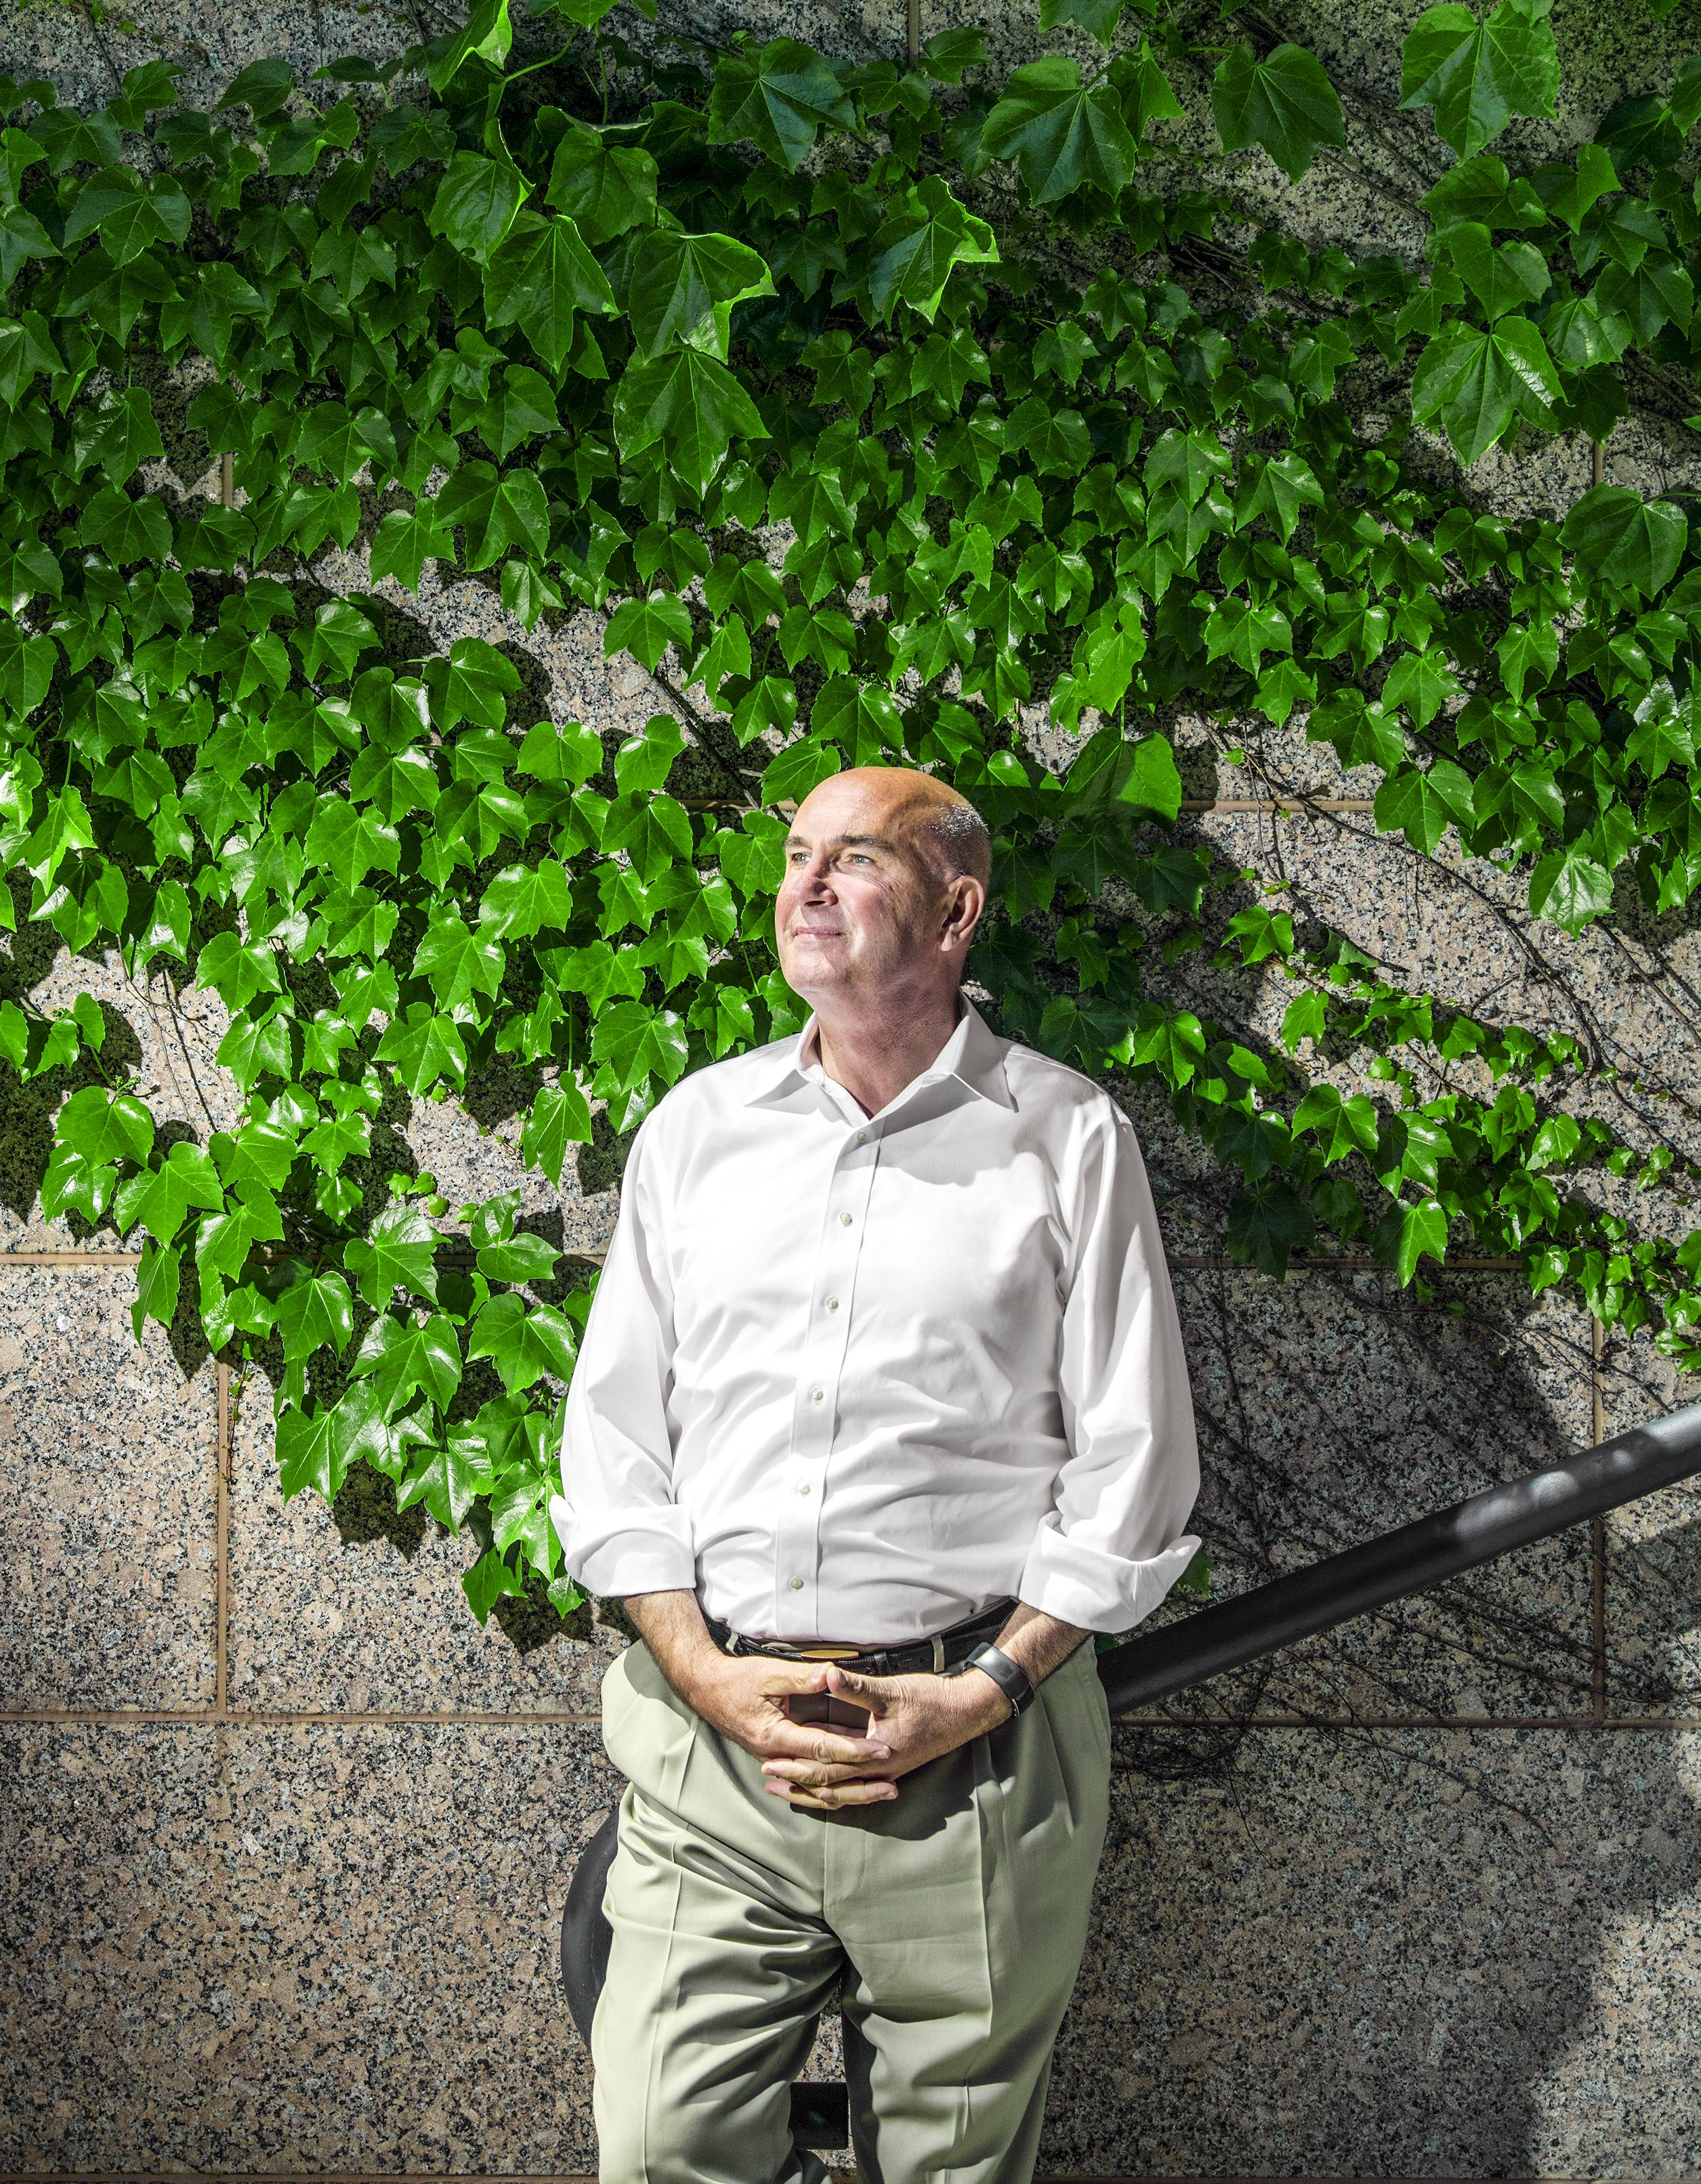 Monsanto Chairman and Chief Executive Officer Hugh Grant was photographed at the company's headquarters in Creve Coeur, Mo., on Thursday, May 5, 2016. Photo by Ryan Donnell